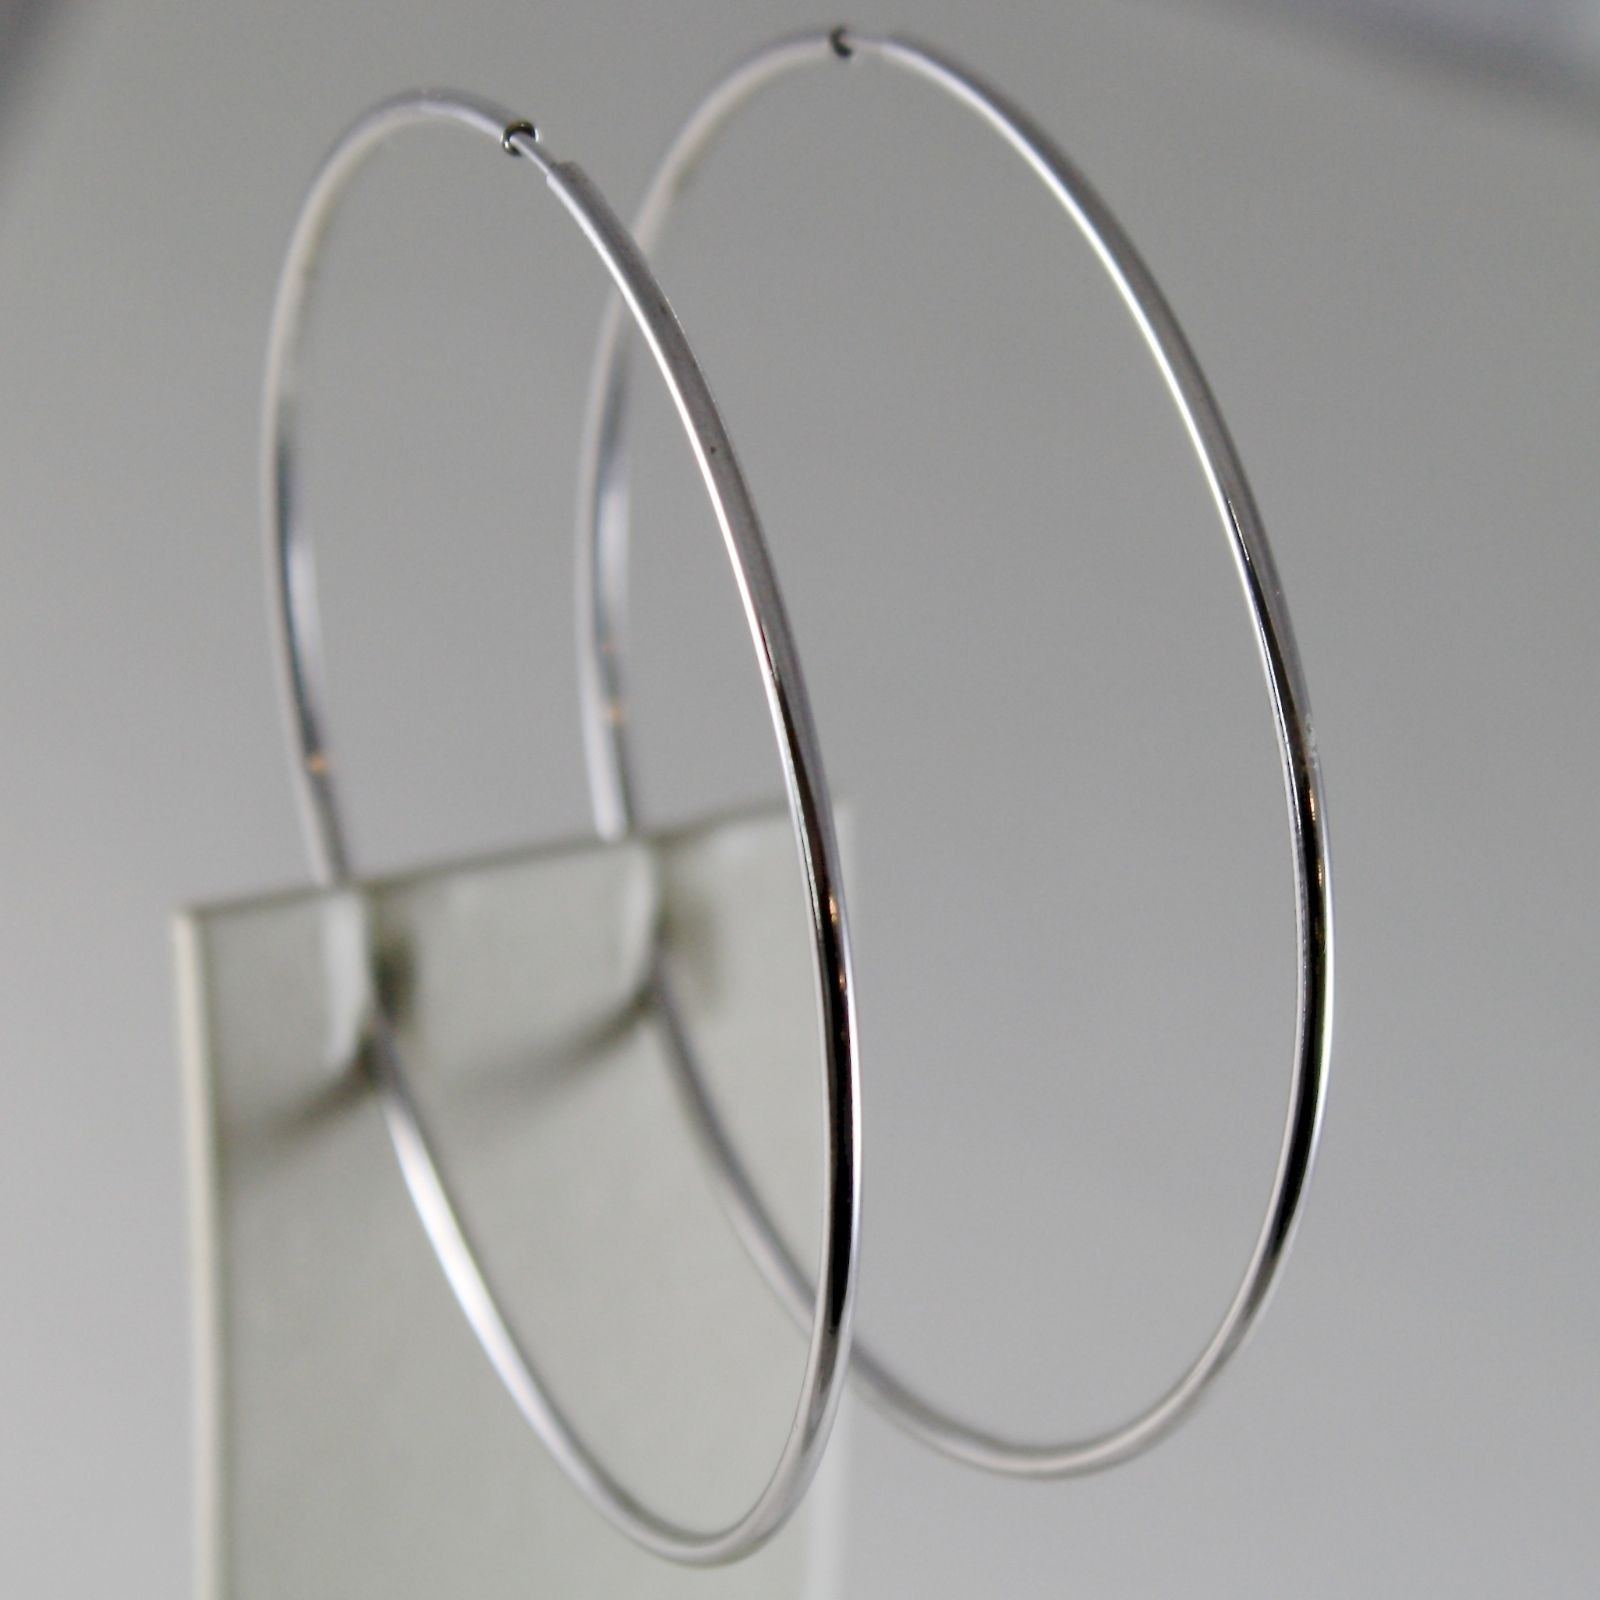 18K WHITE GOLD EARRINGS BIG CIRCLE HOOP 67 MM 2.64 INCH DIAMETER MADE IN ITALY